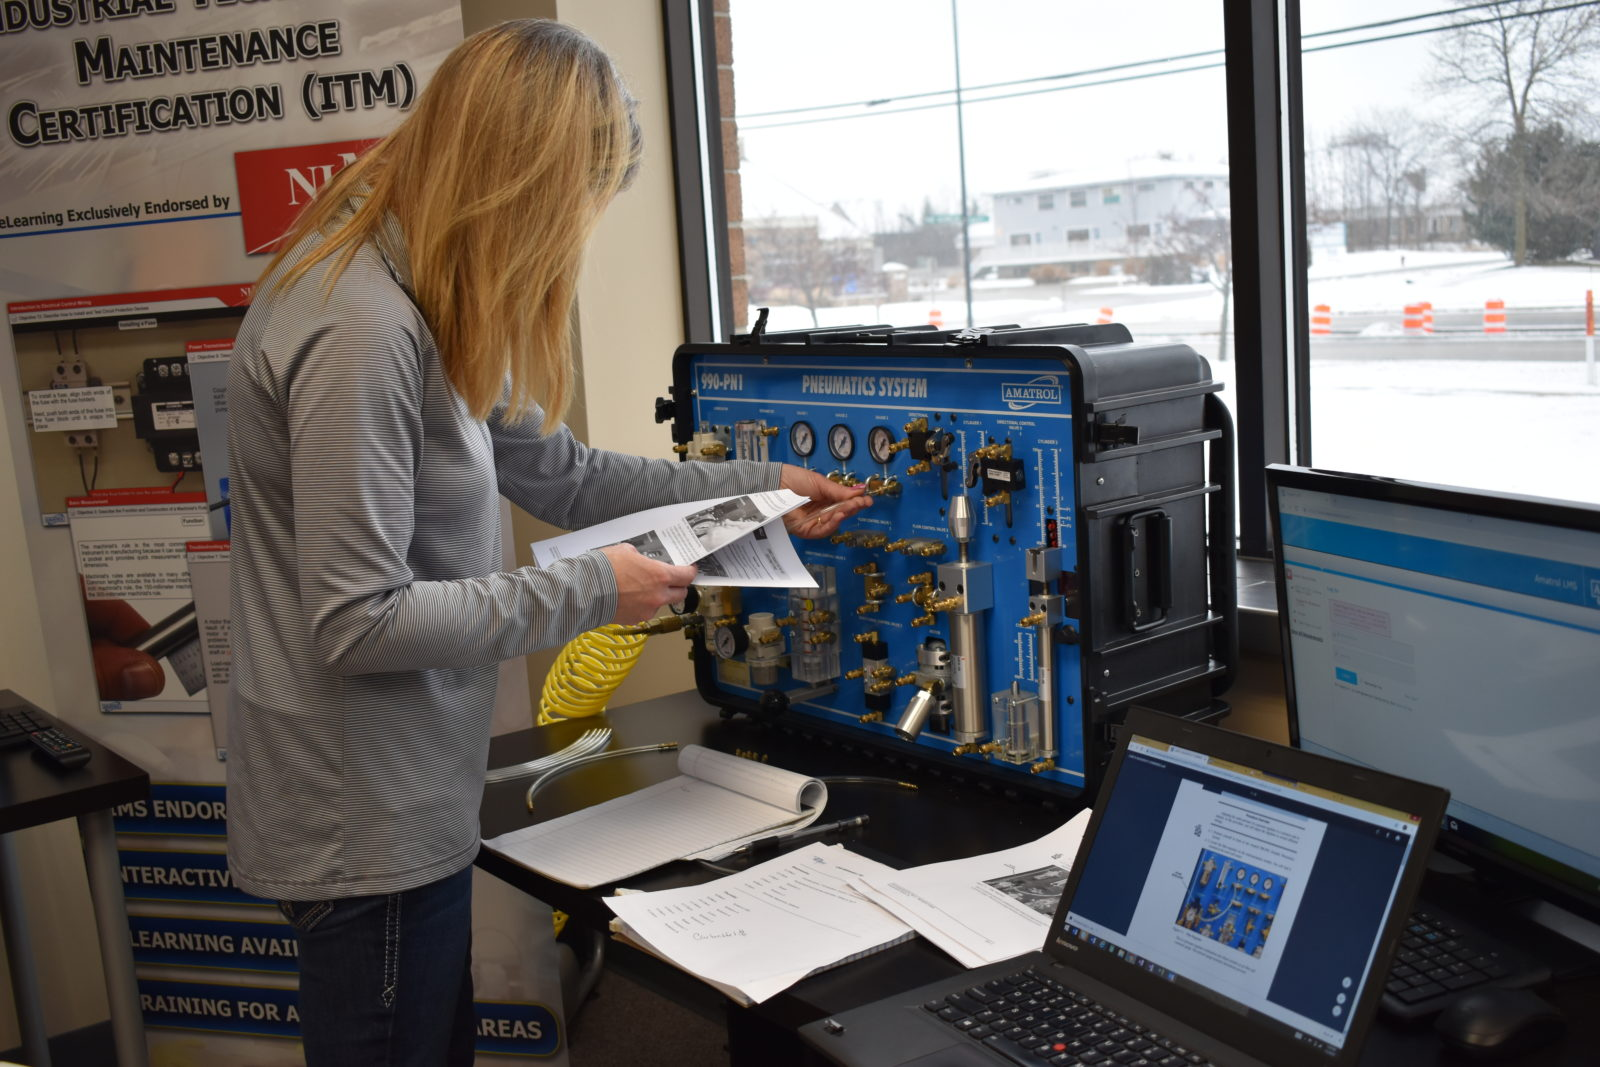 Amatrol portable trainers prepare students and employees for every competency in manufacturing